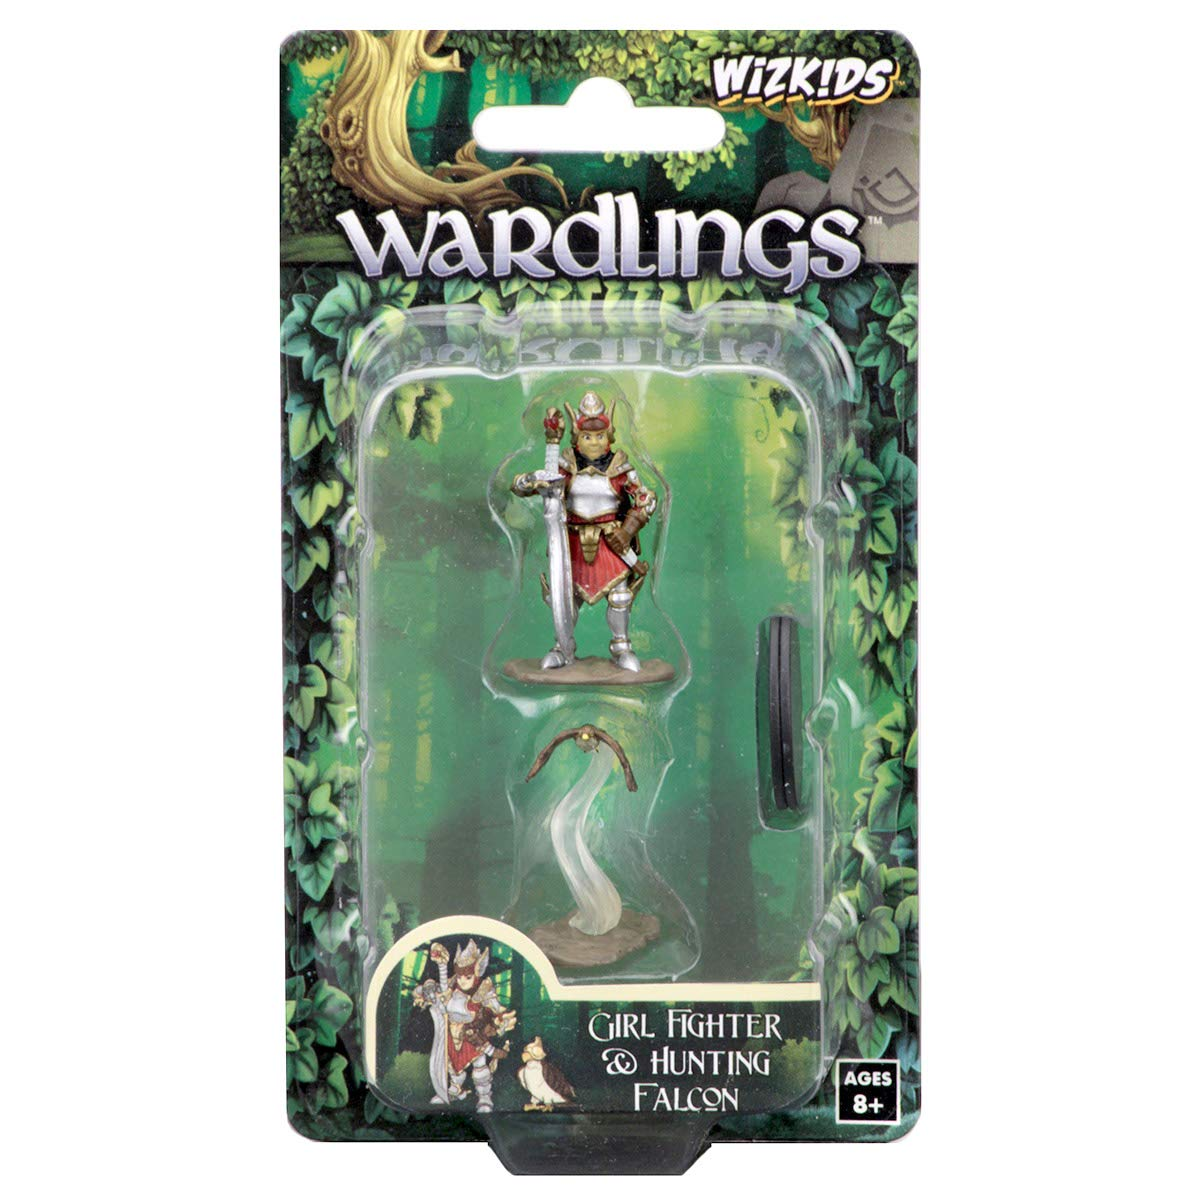 FanHeads Wizkids Wardlings RPG Figures, Girl Fighter Hunting Falcon